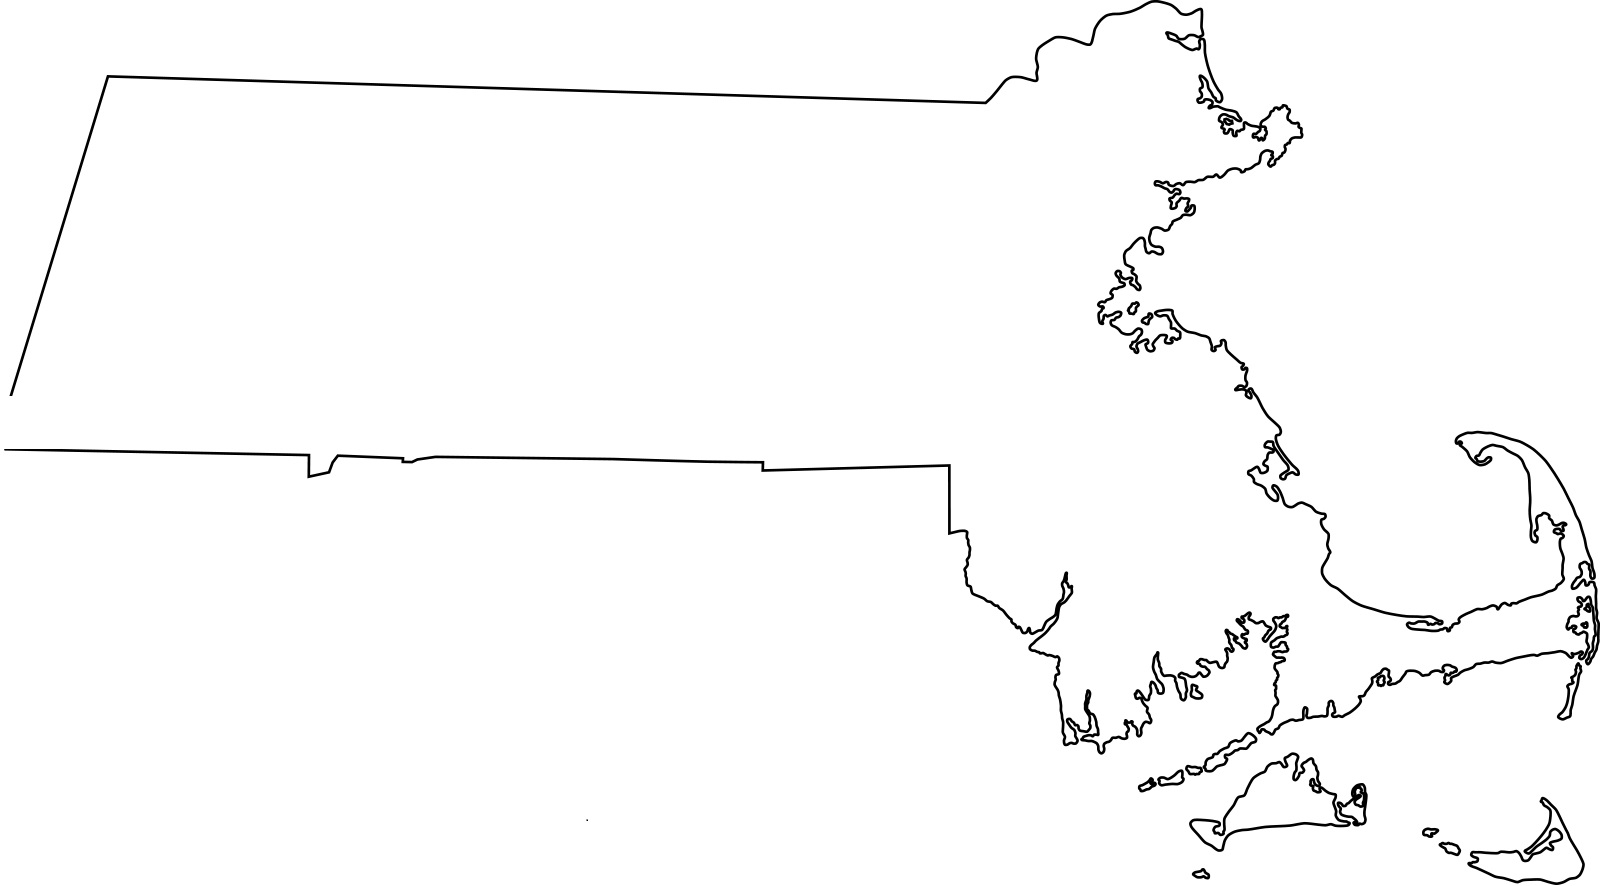 Massachusetts blank outline Map | Large Printable High Resolution and Standard Map